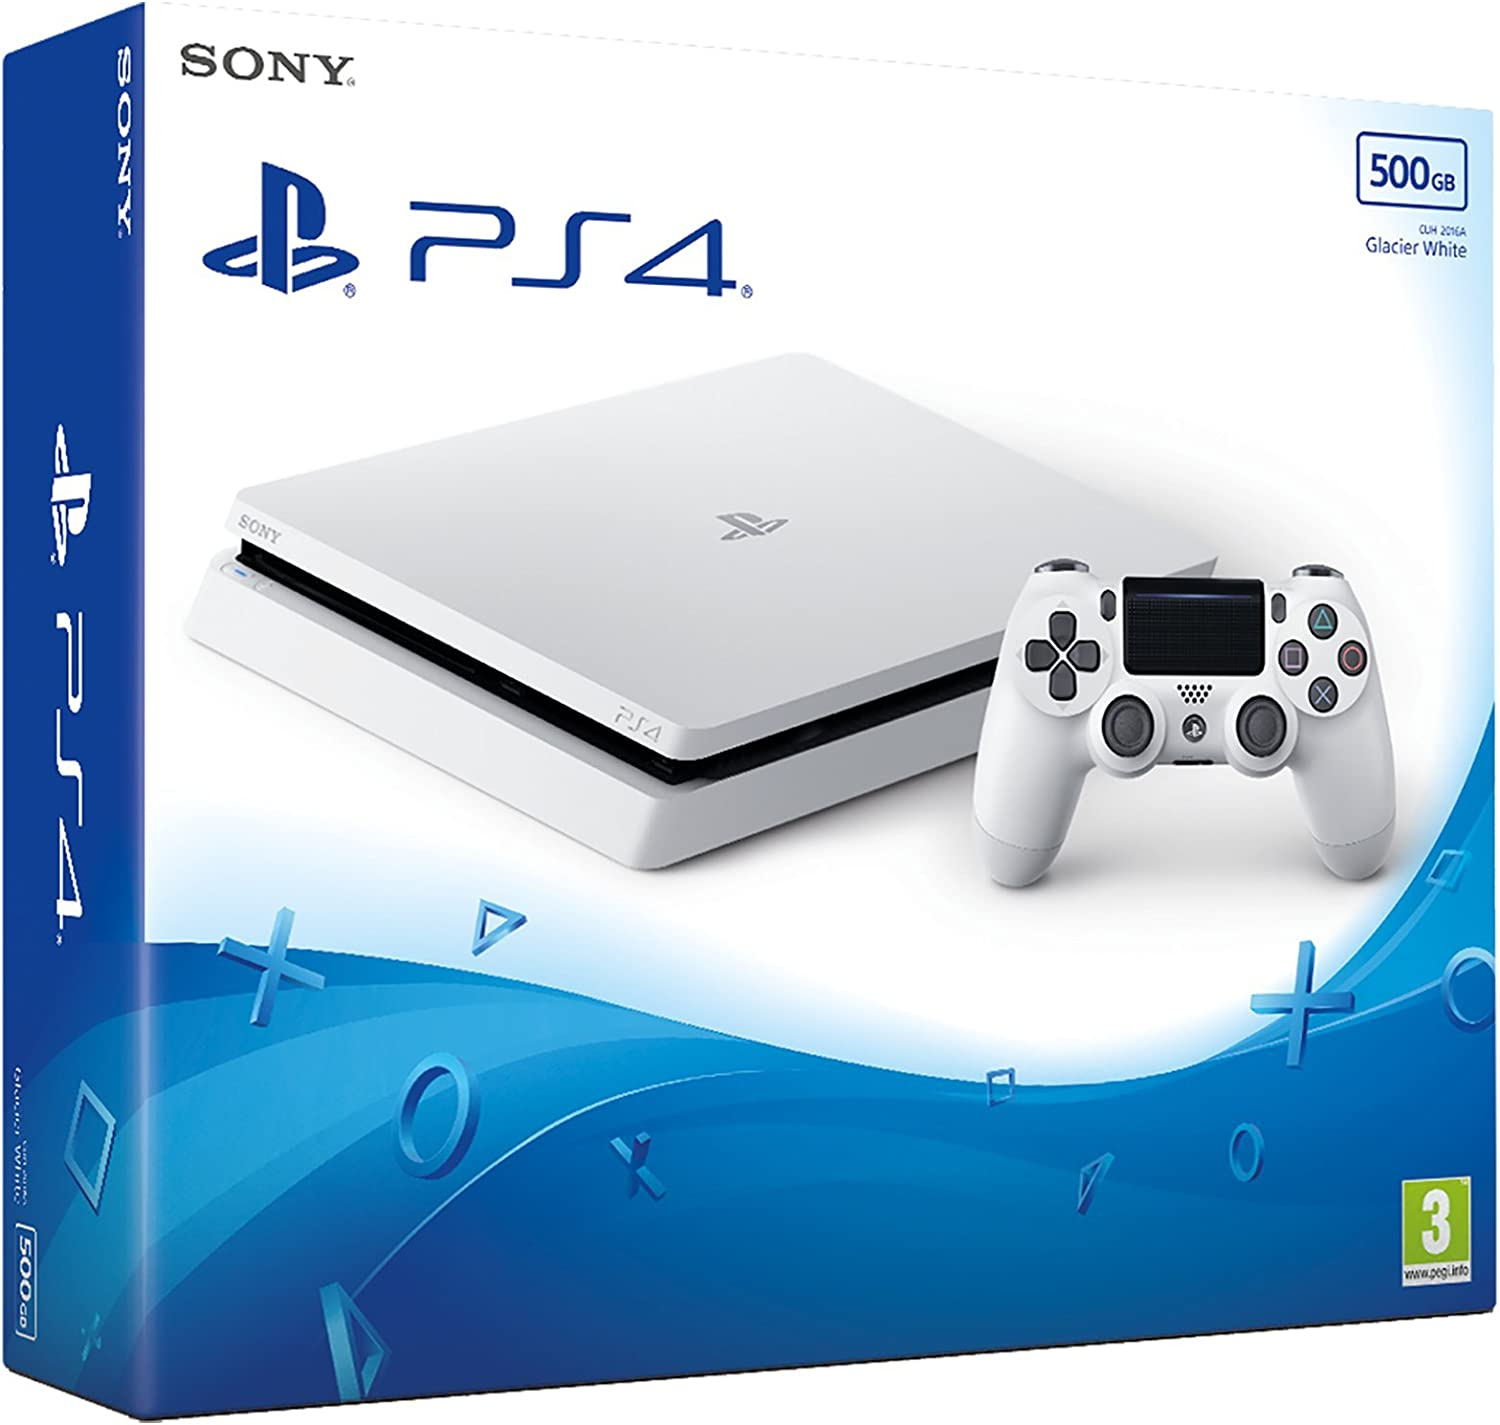 Sony Playstation 4 500 GB - White (PS4) [Importación Inglesa]: Amazon.es: Videojuegos